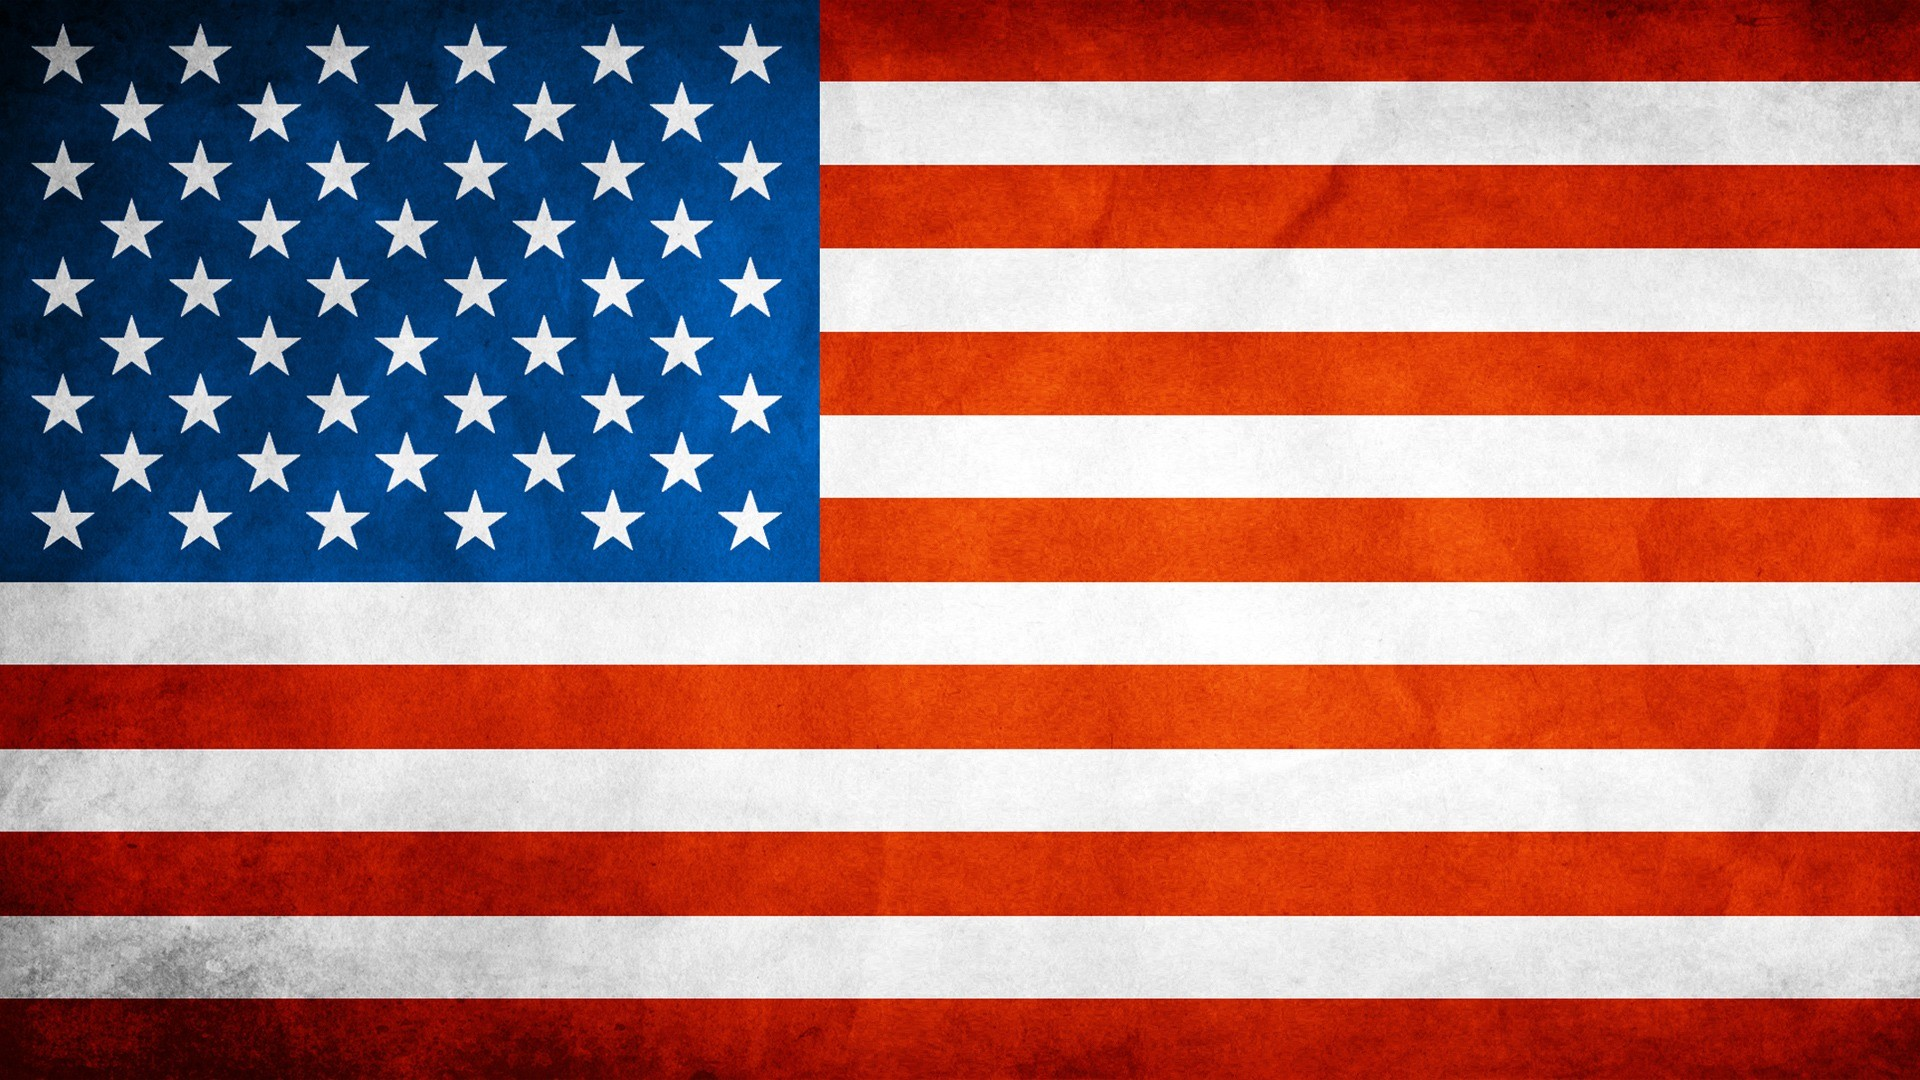 Vintage American Flag Wallpaper Hd Images amp Pictures   Becuo 1920x1080